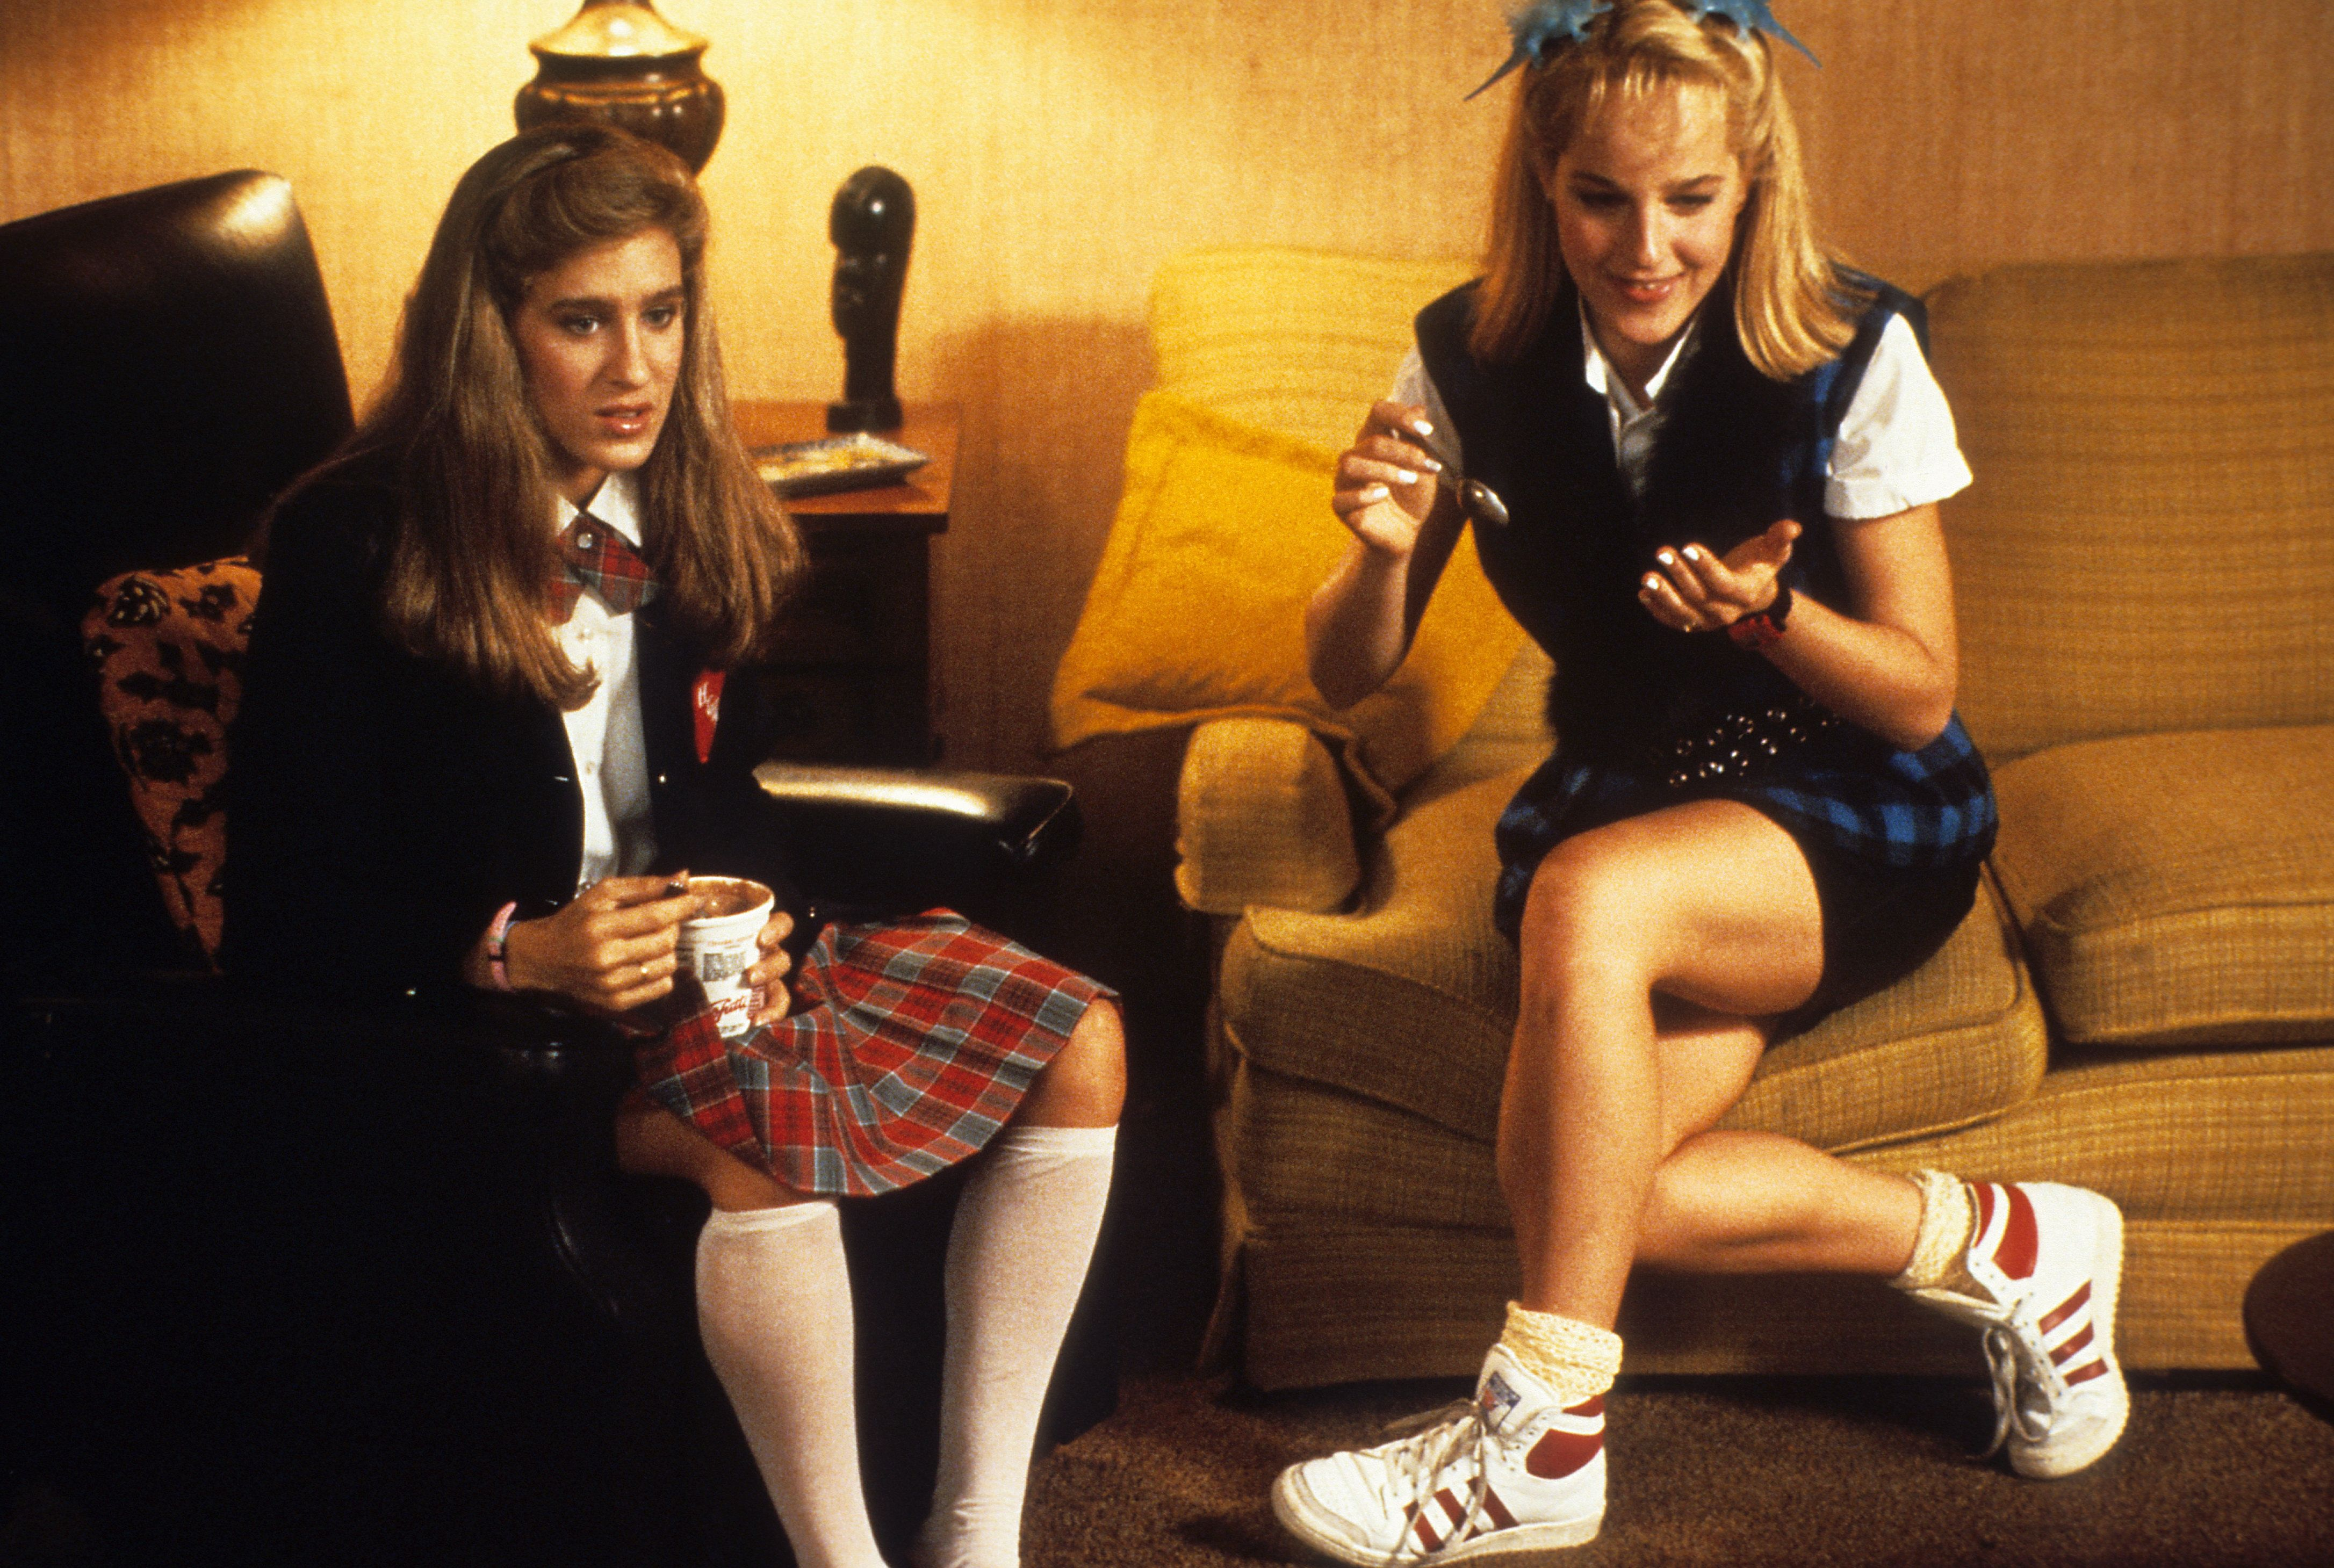 """Sarah Jessica Parker and Helen Hunt watching TV at home in a scene from the film """"Girls Just Want To Have Fun"""" (1985)."""